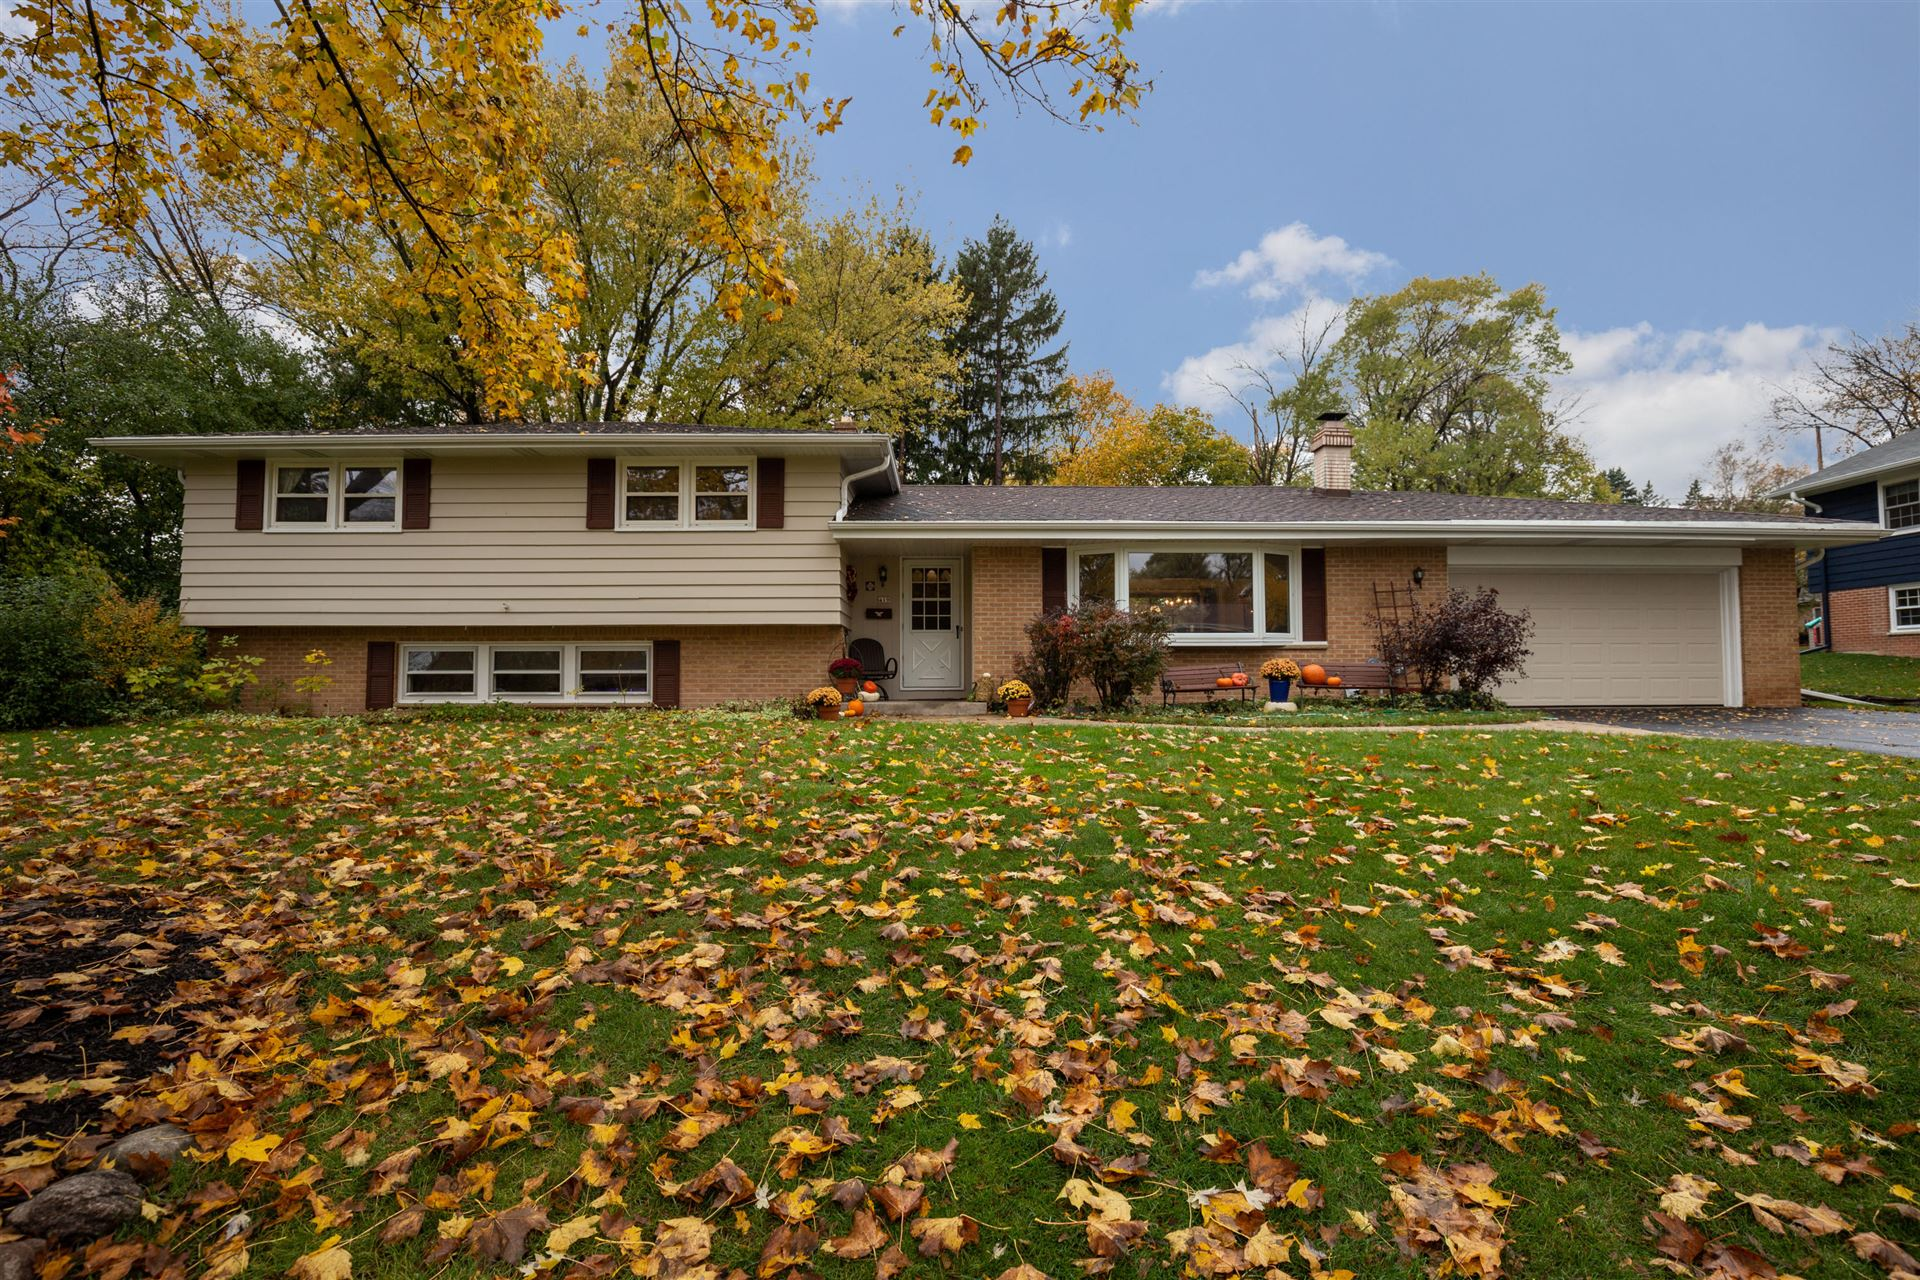 419 Alta Loma Dr, Thiensville, WI 53092 - #: 1715482